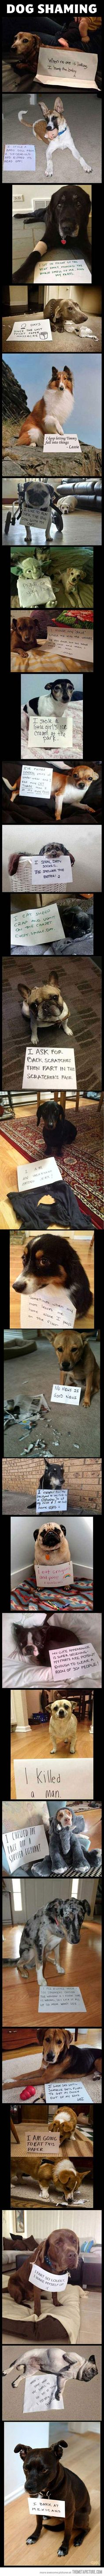 Love dog shaming